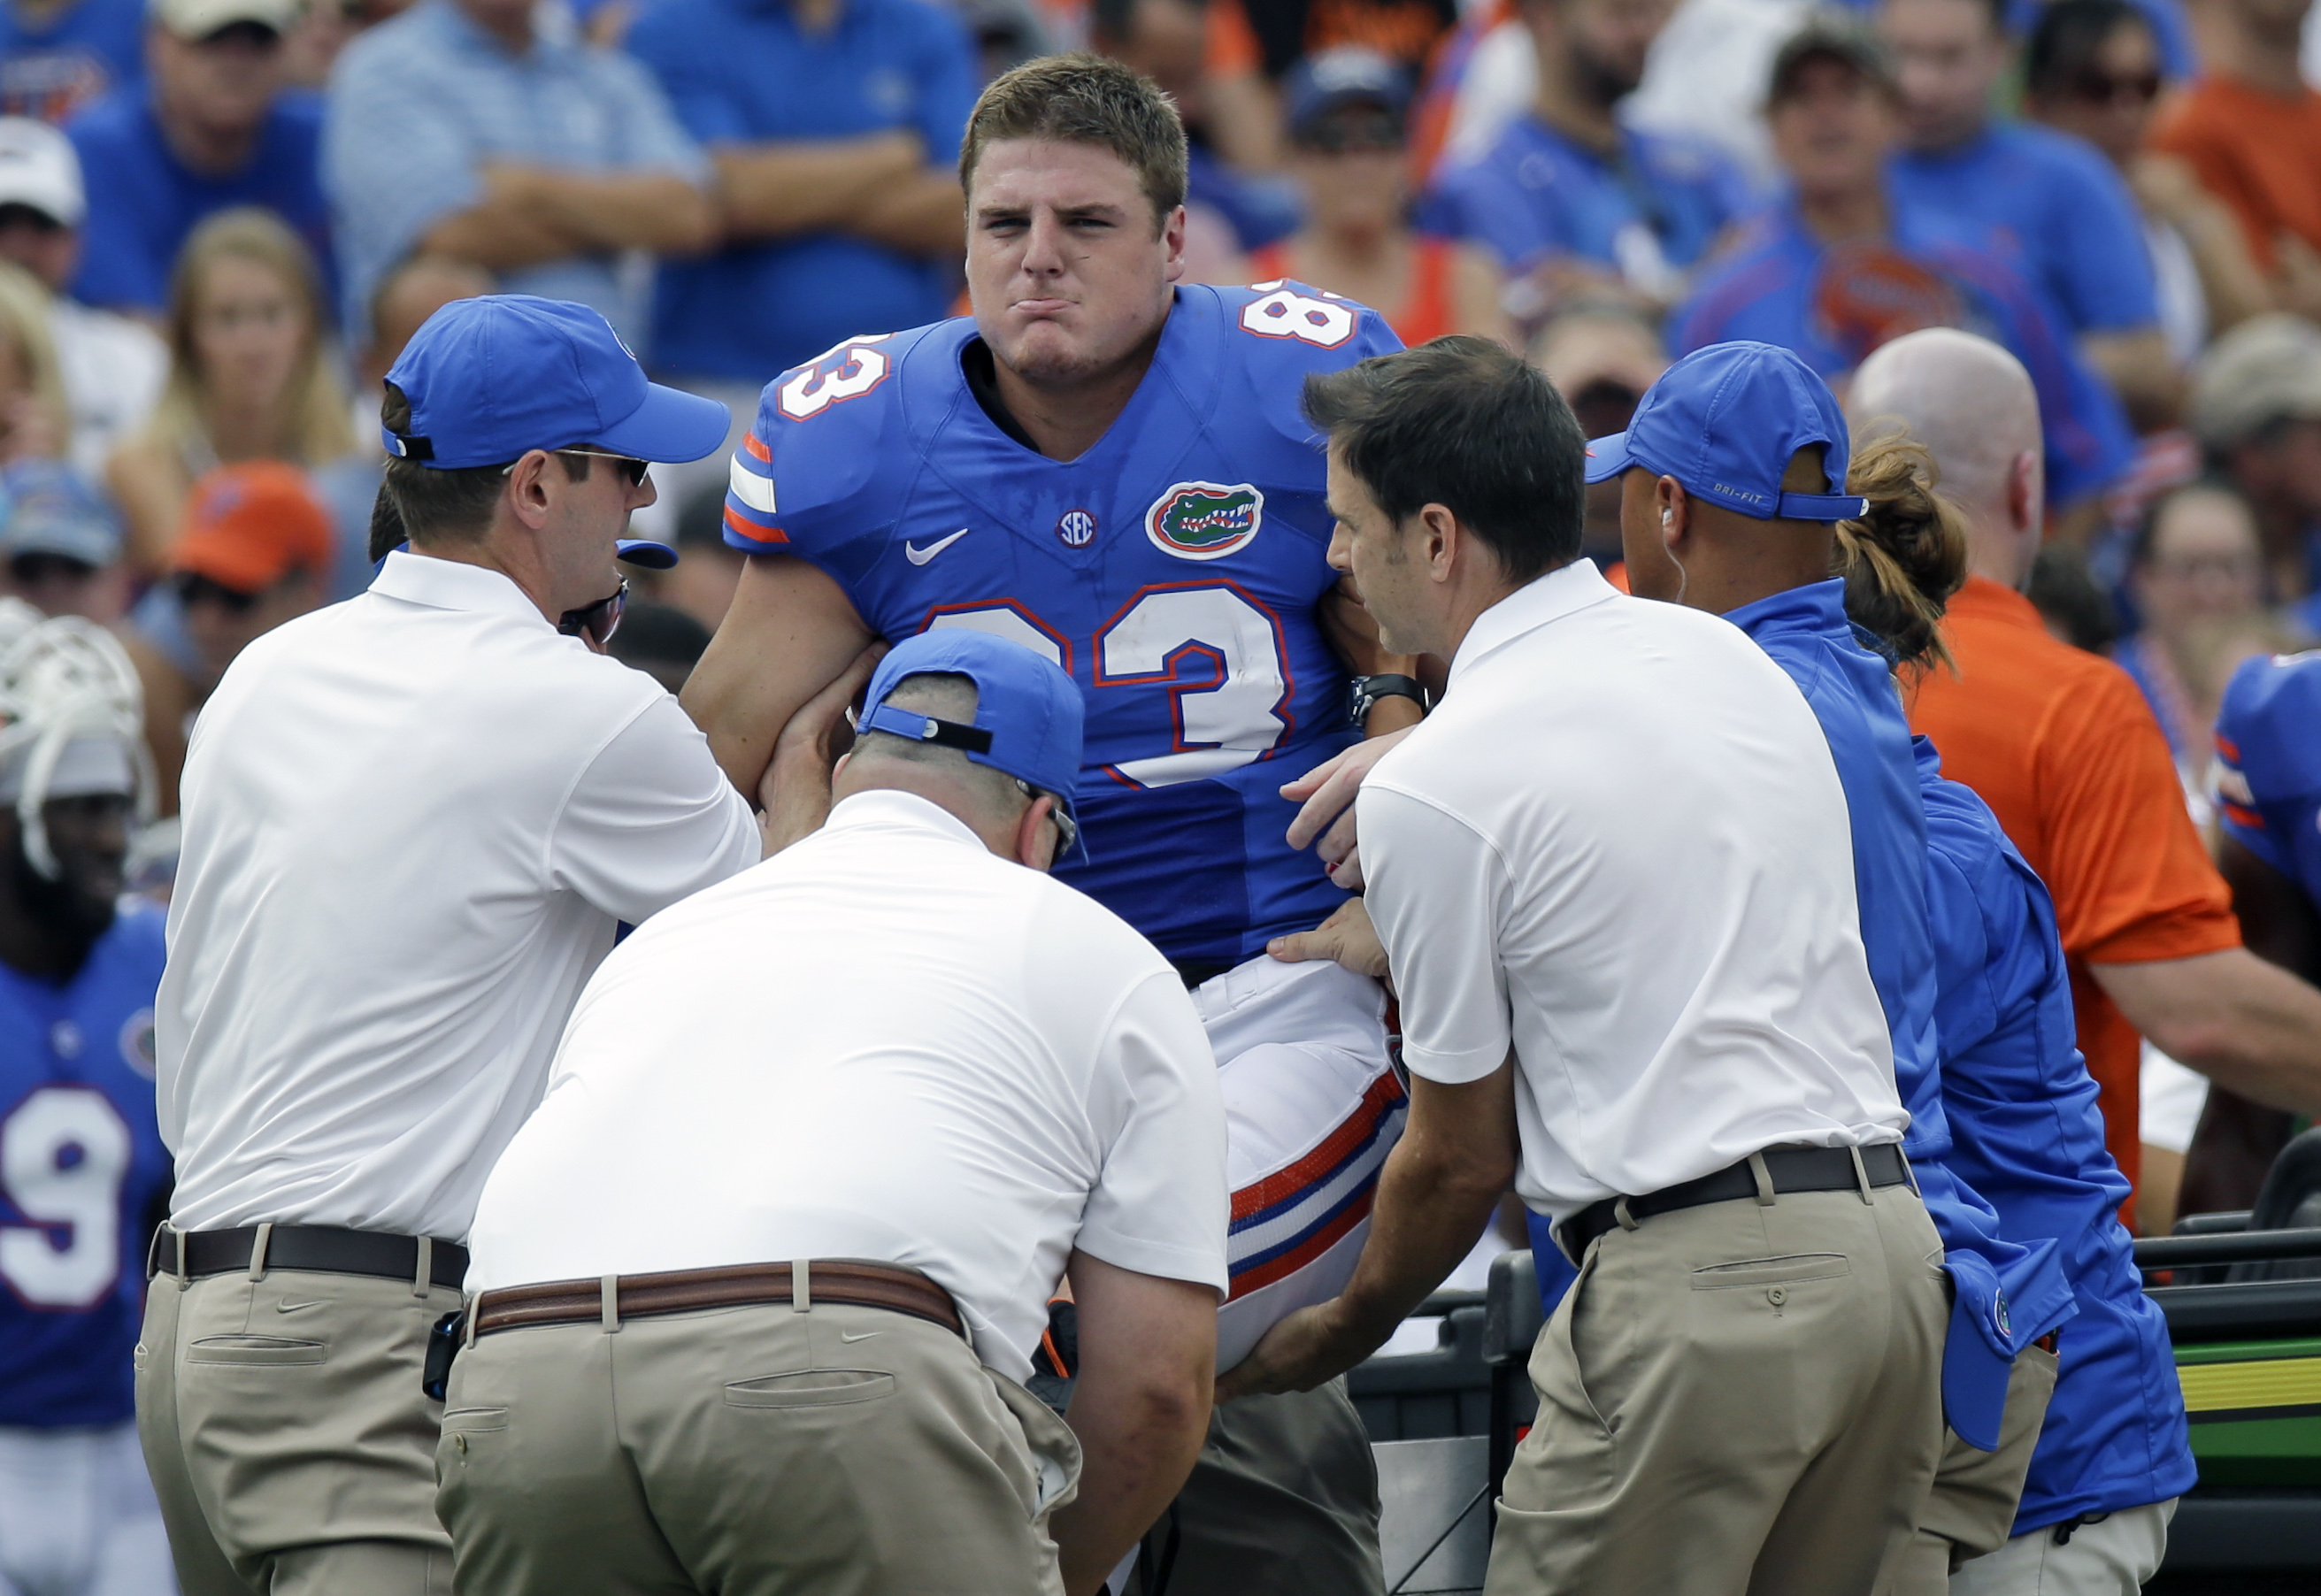 FILE - In this Sept. 6, 2014, file photo, team personnel lift Florida tight end Jake McGee on a cart to take him off the field after was injured during the first half of an NCAA college football game against Eastern Michigan in Gainesville, Fla. McGee bro